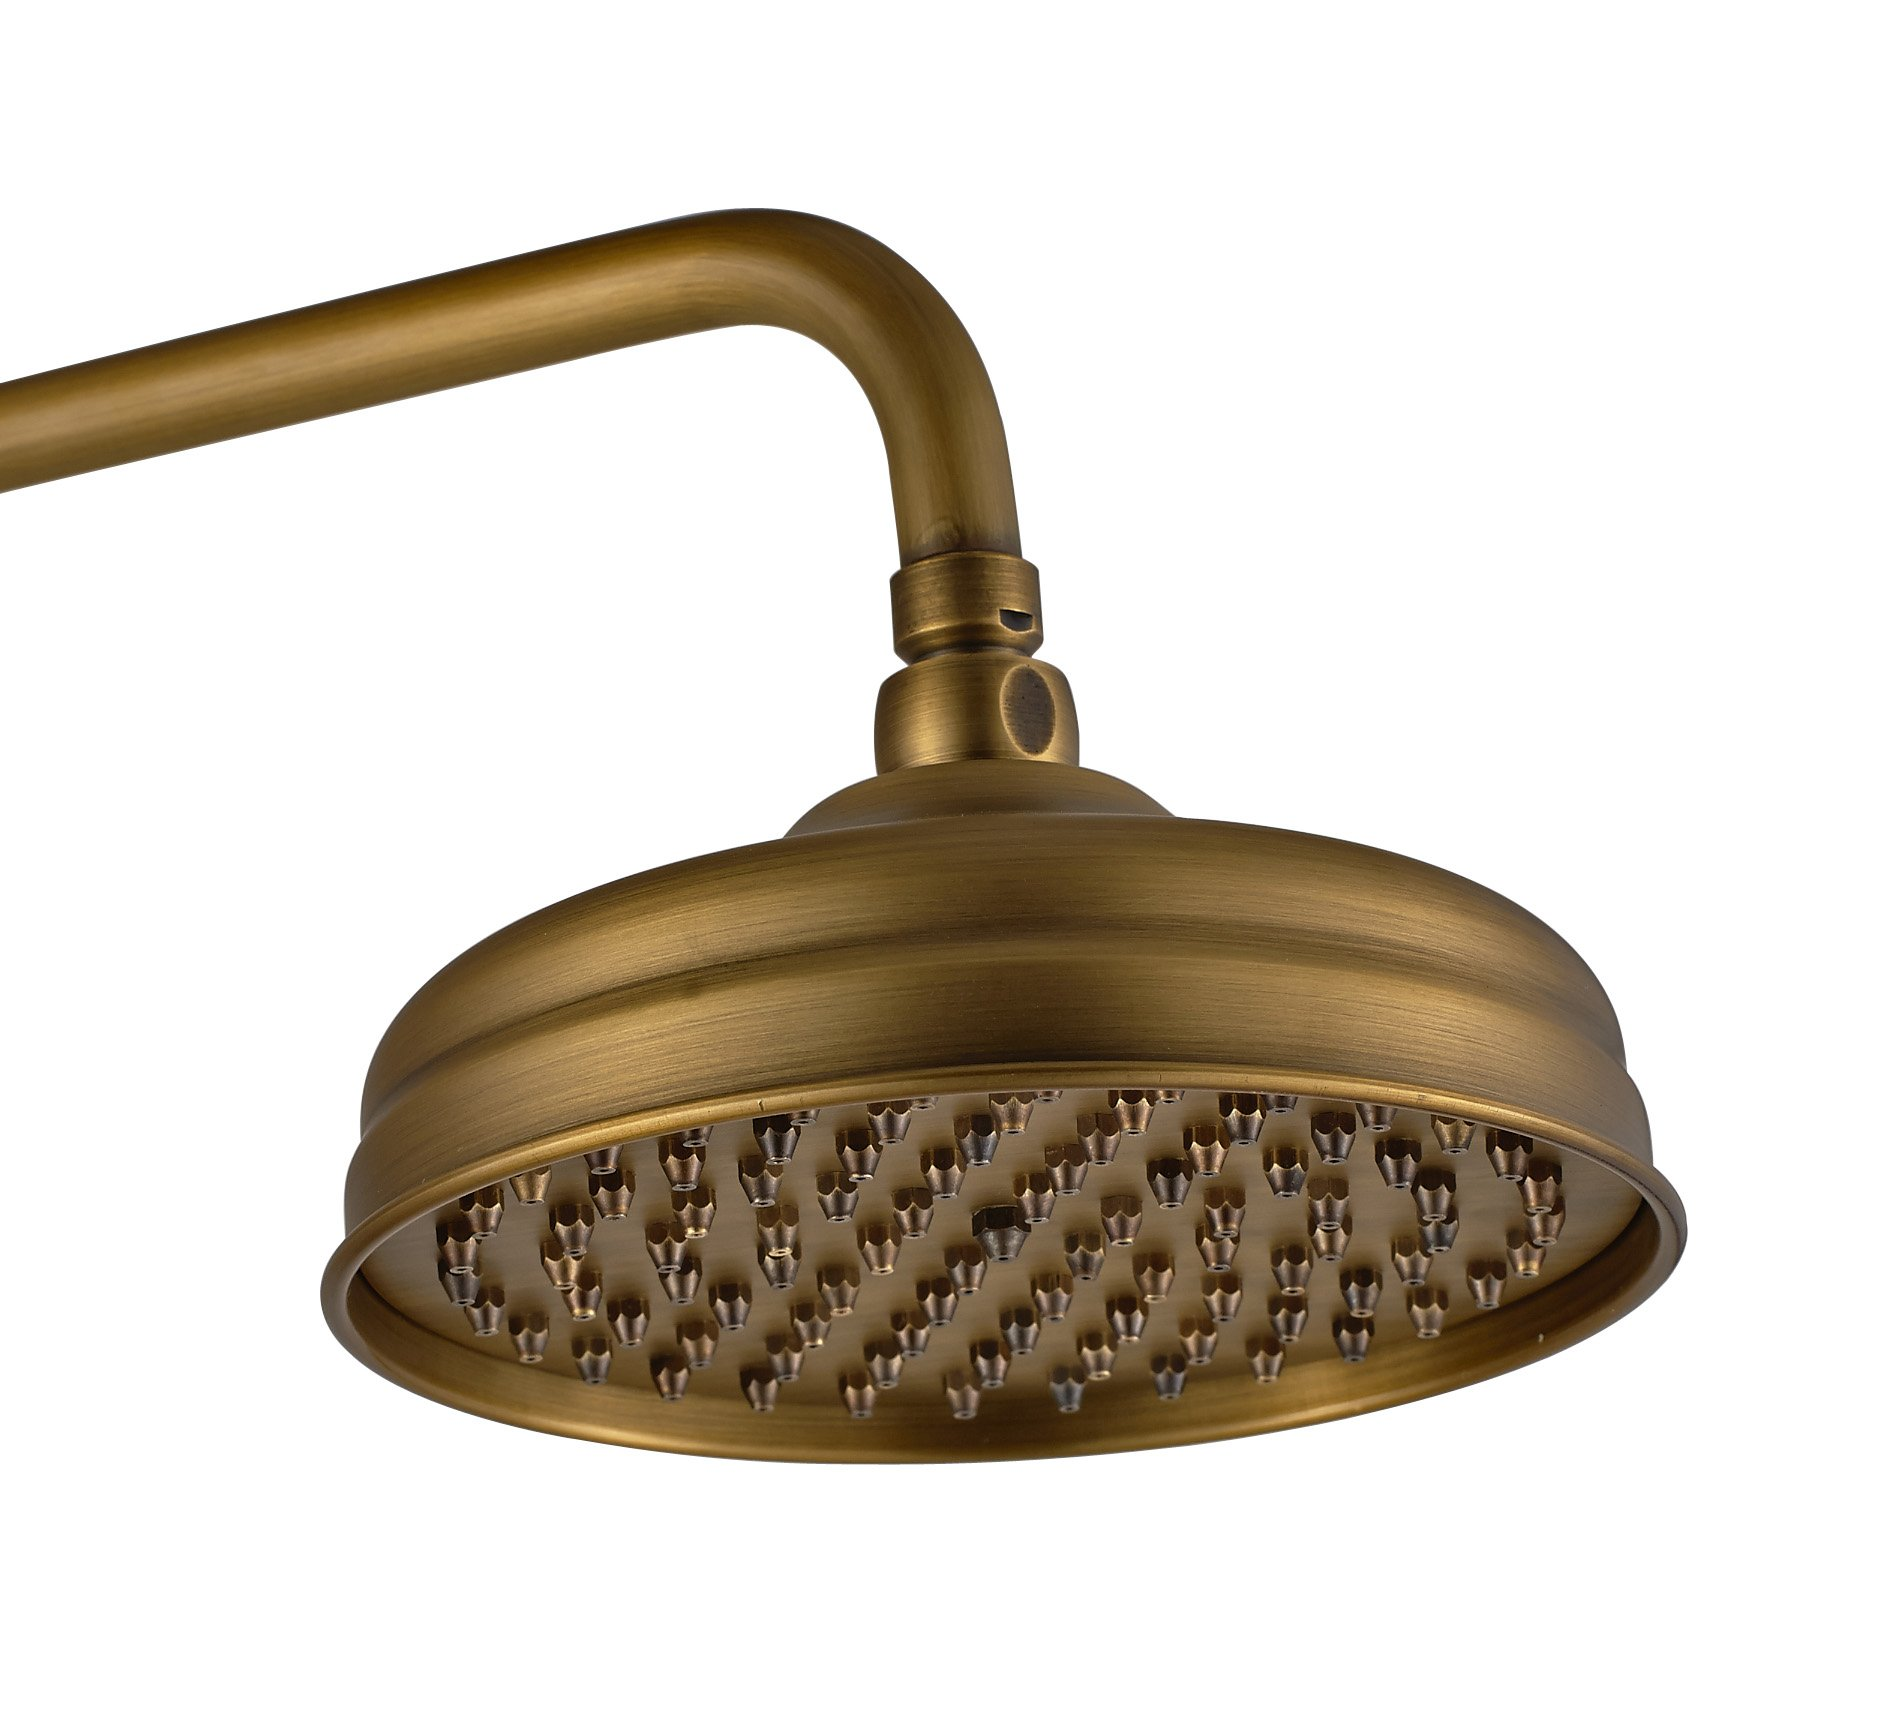 Traditional Antique Brass Finish Rain Style Showerhead Solid Brass Waterfall Shower Head by GUMA